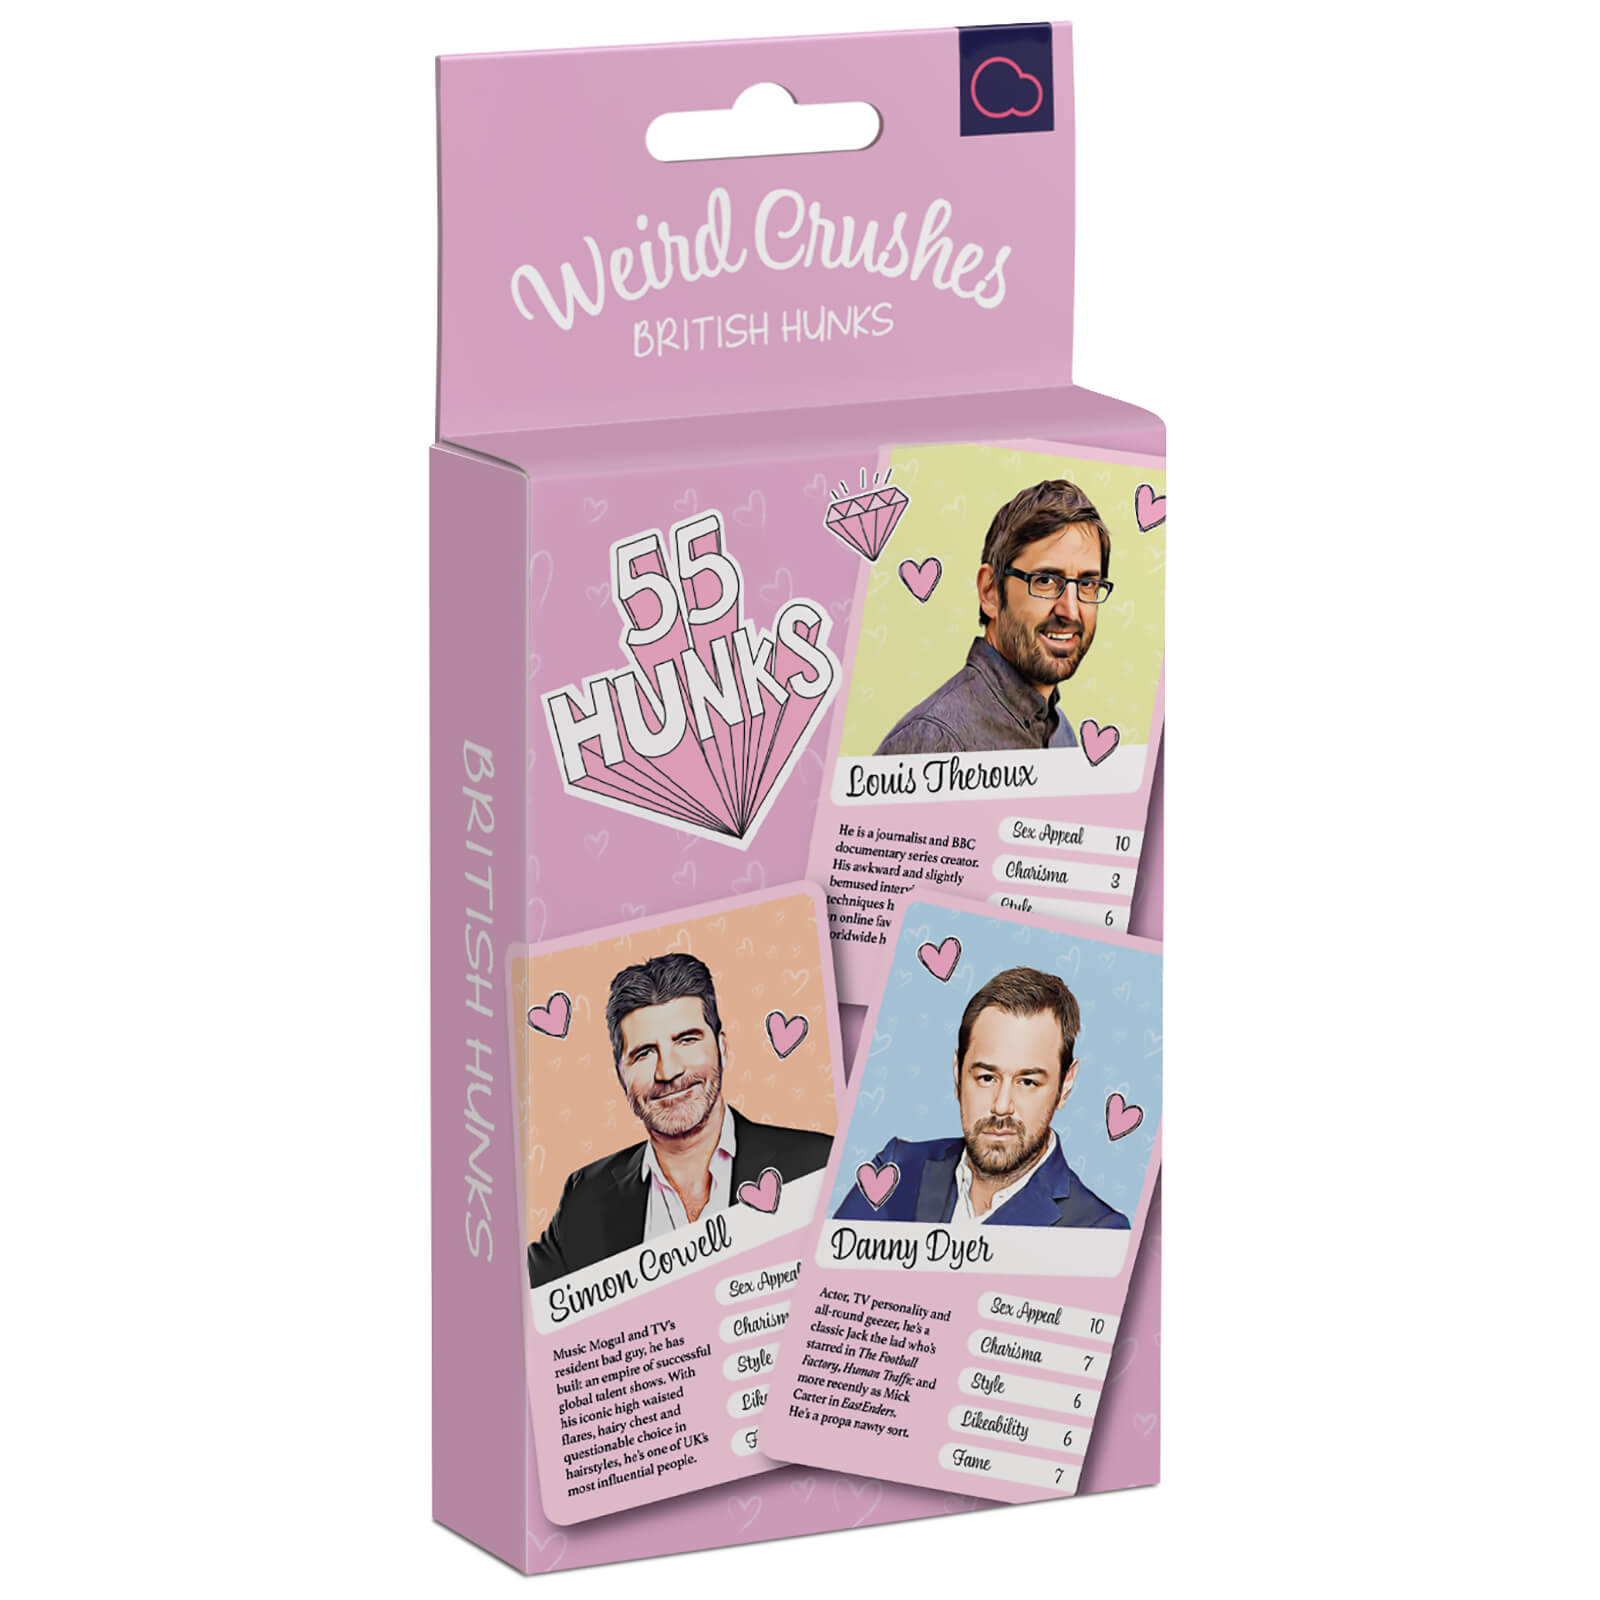 Image of Weird Crushes British Hunks Card Game